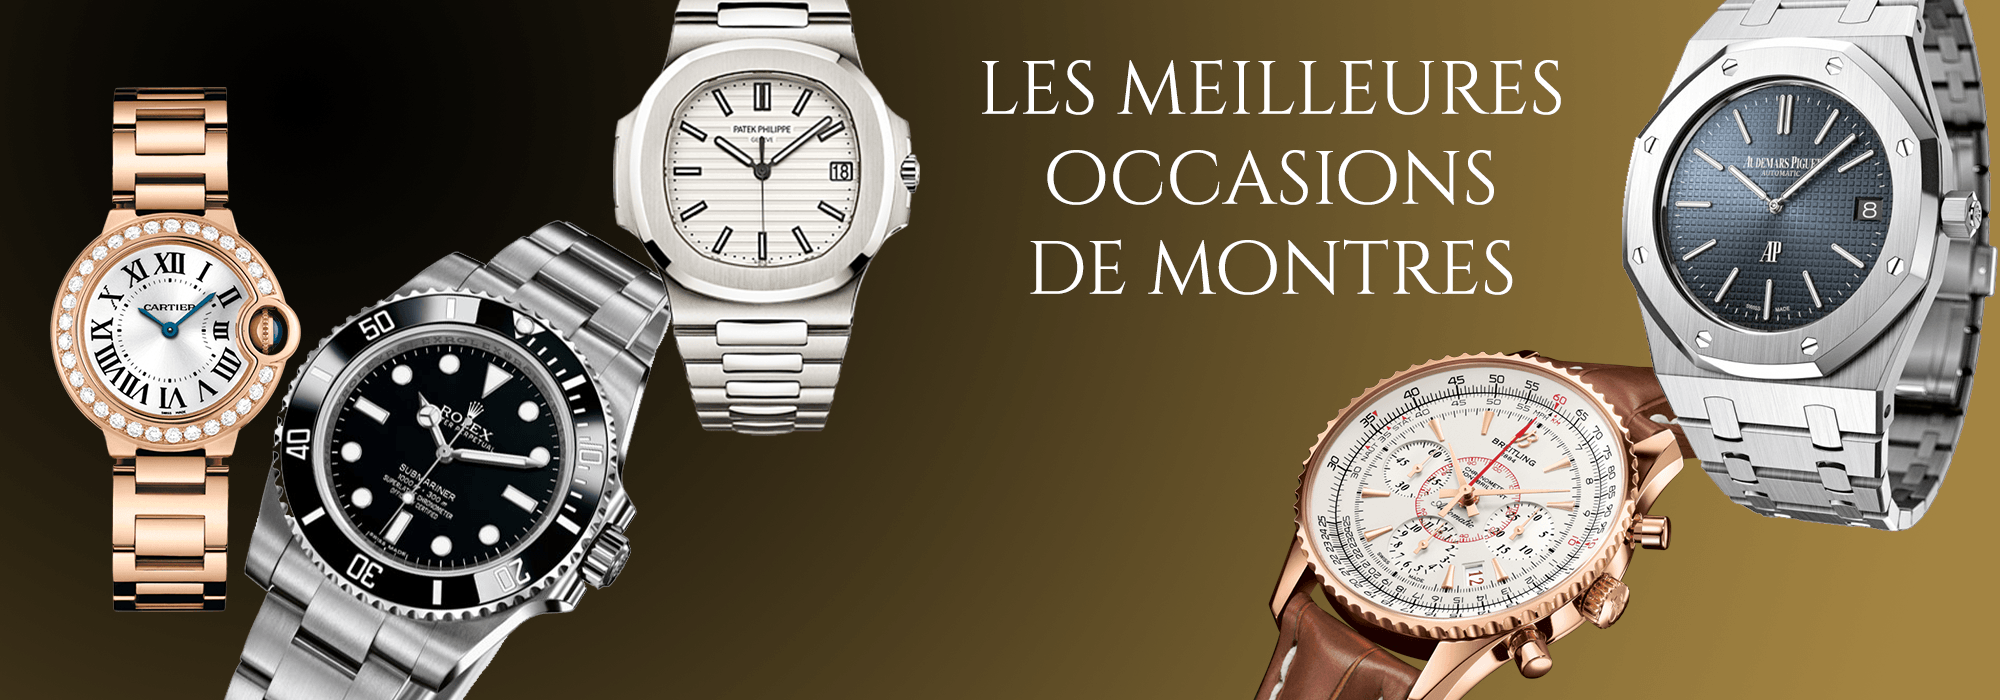 montre occasion nice